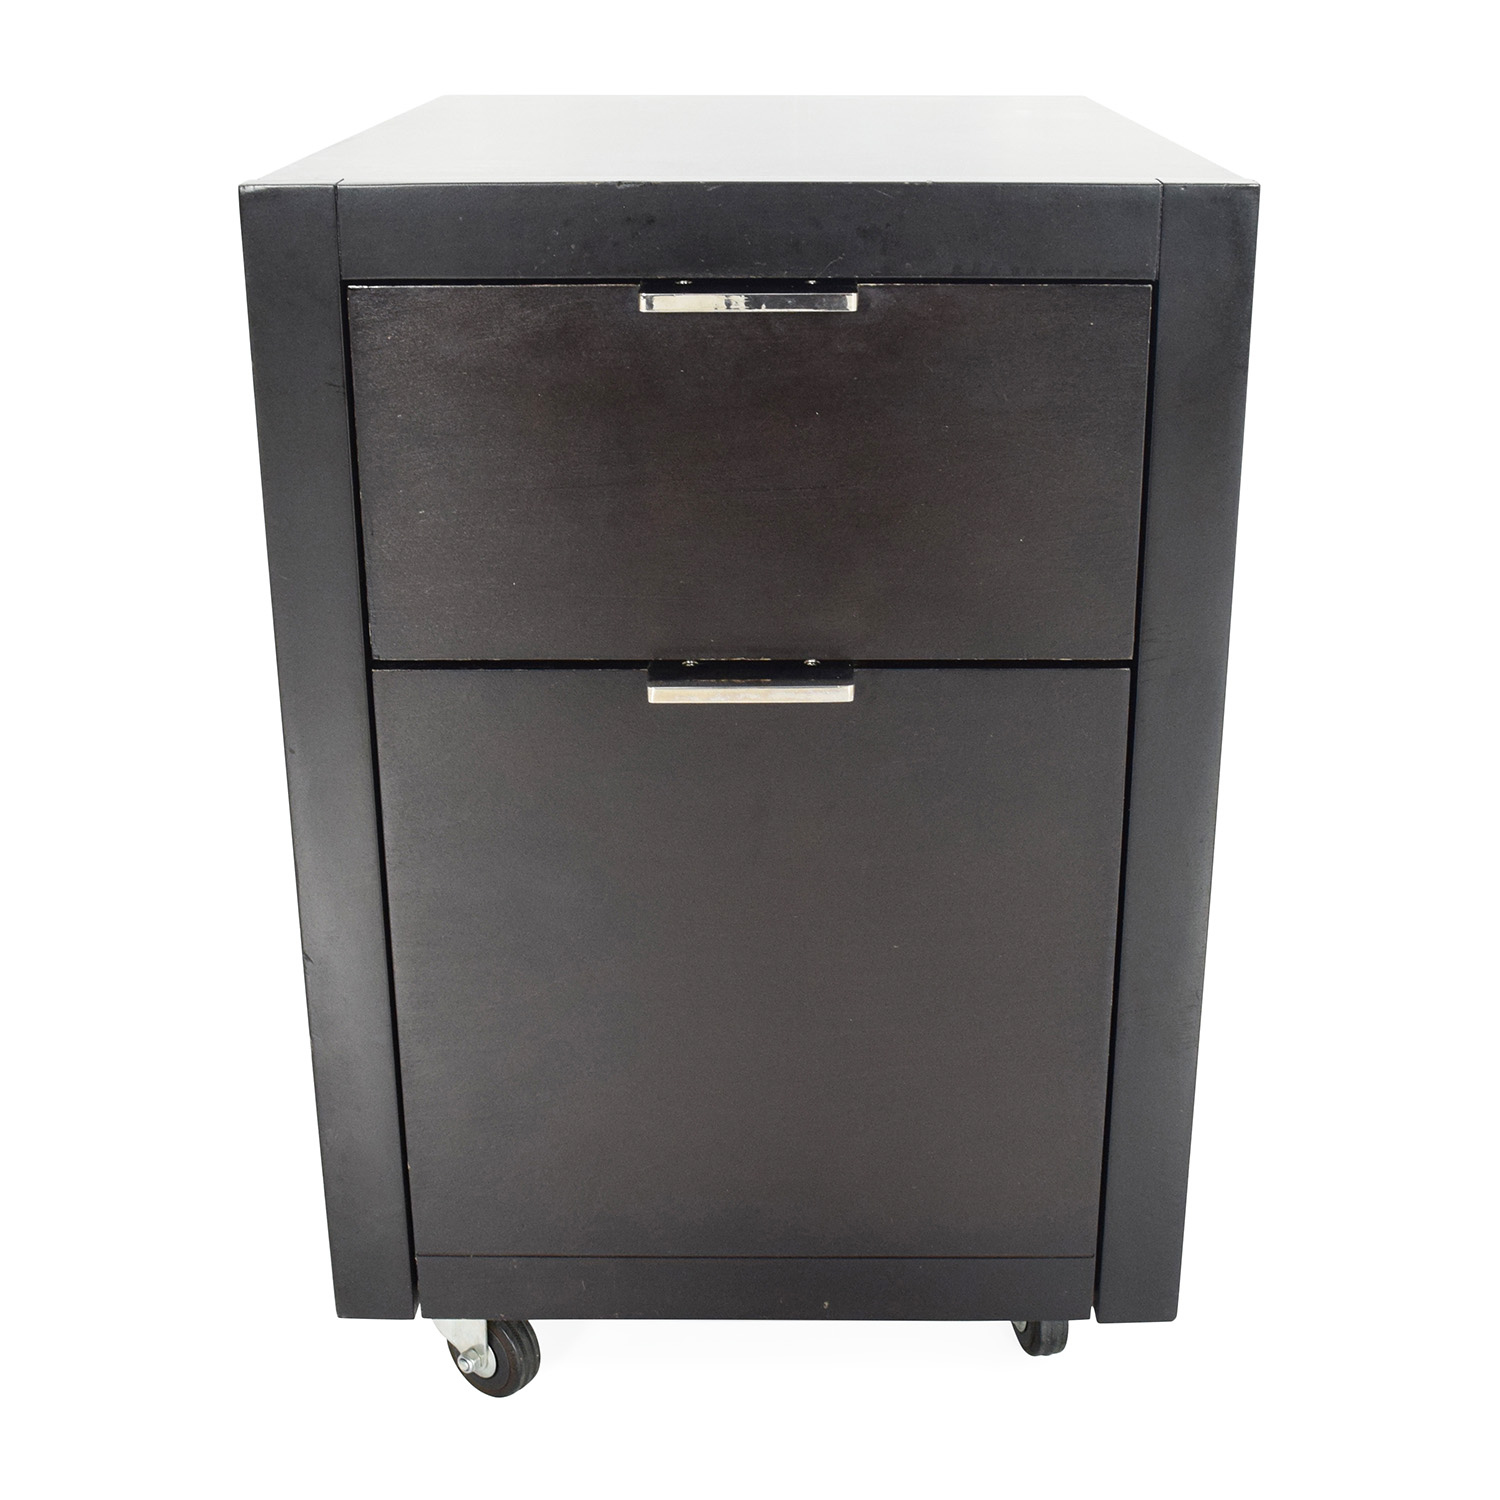 Unknown Brand Black Chest of Drawers second hand